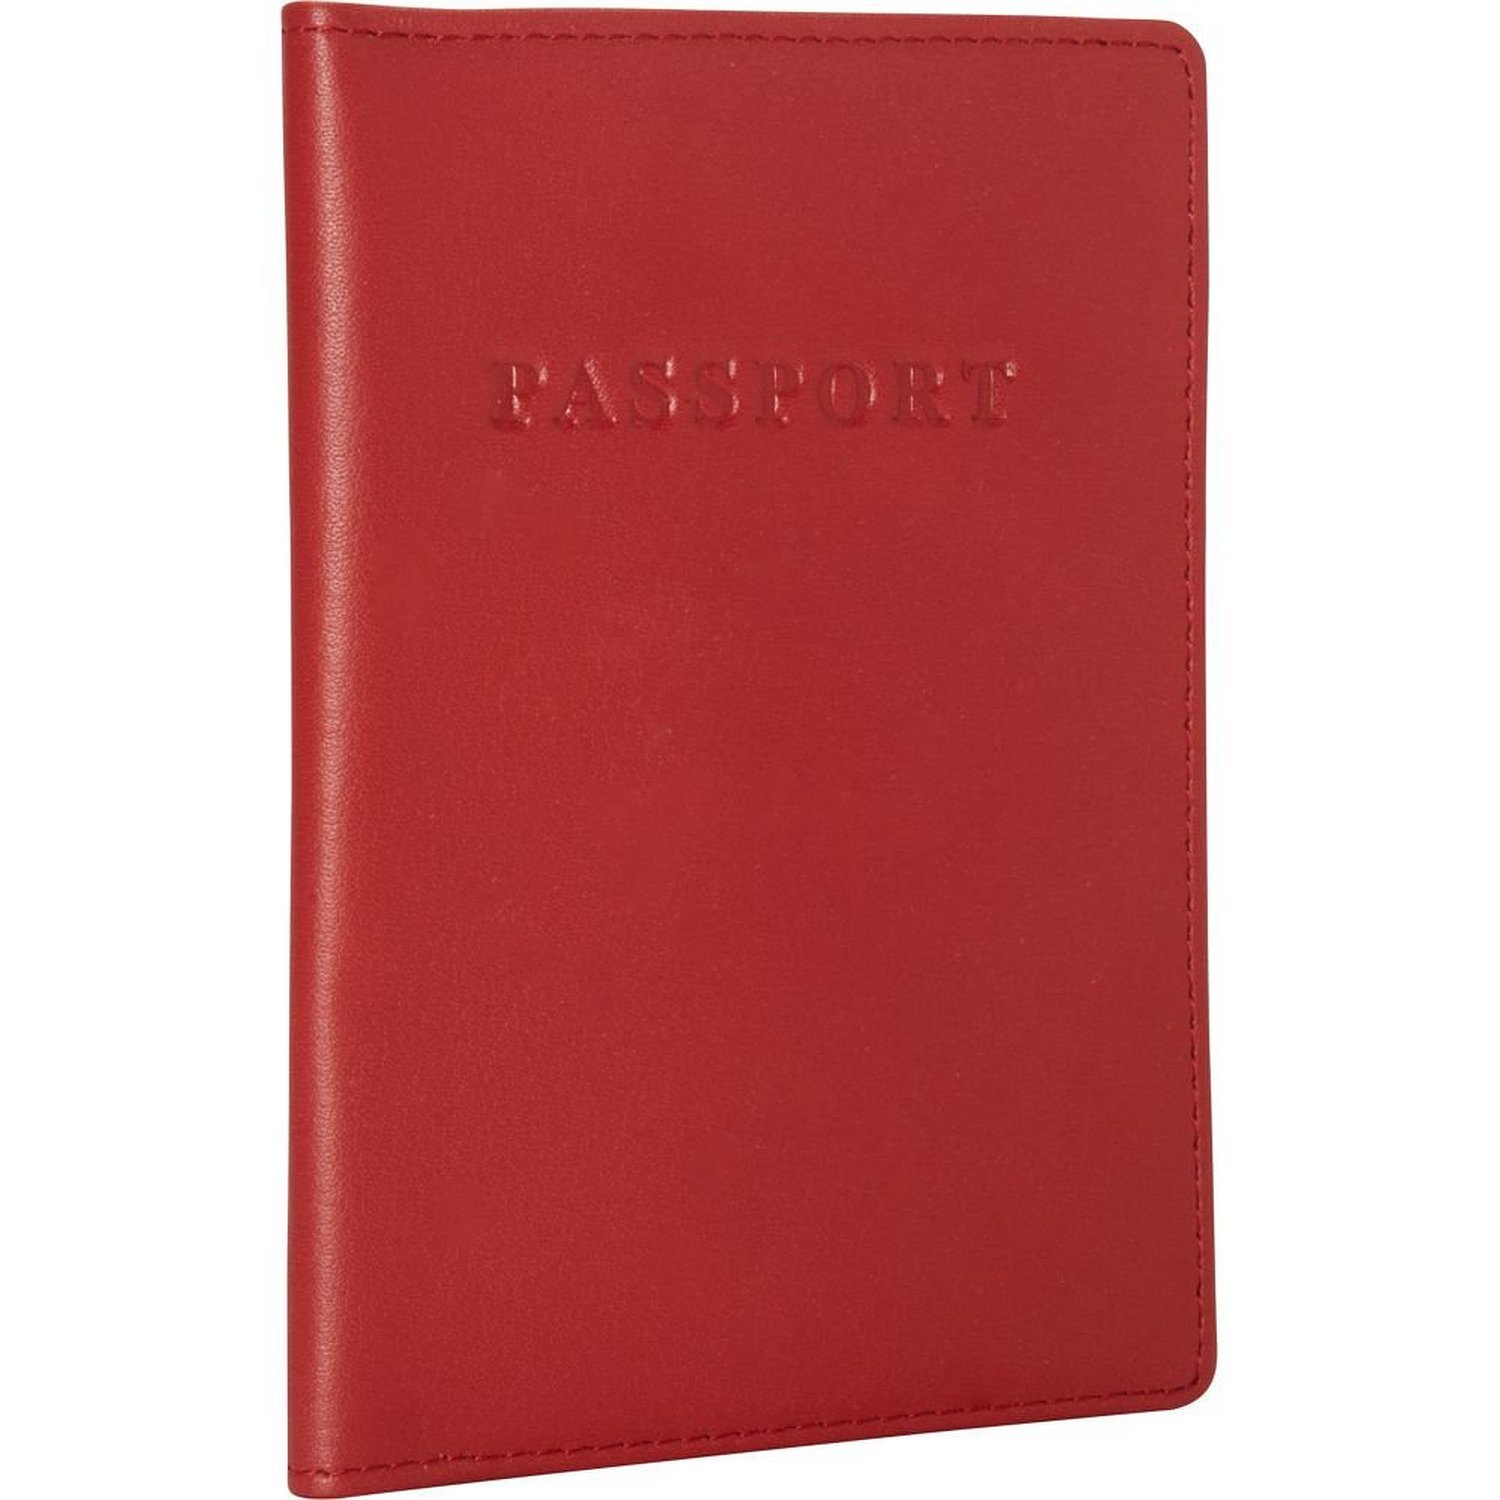 Royce Leather Passport Holder and Travel Document Organizer in Leather, Red 2